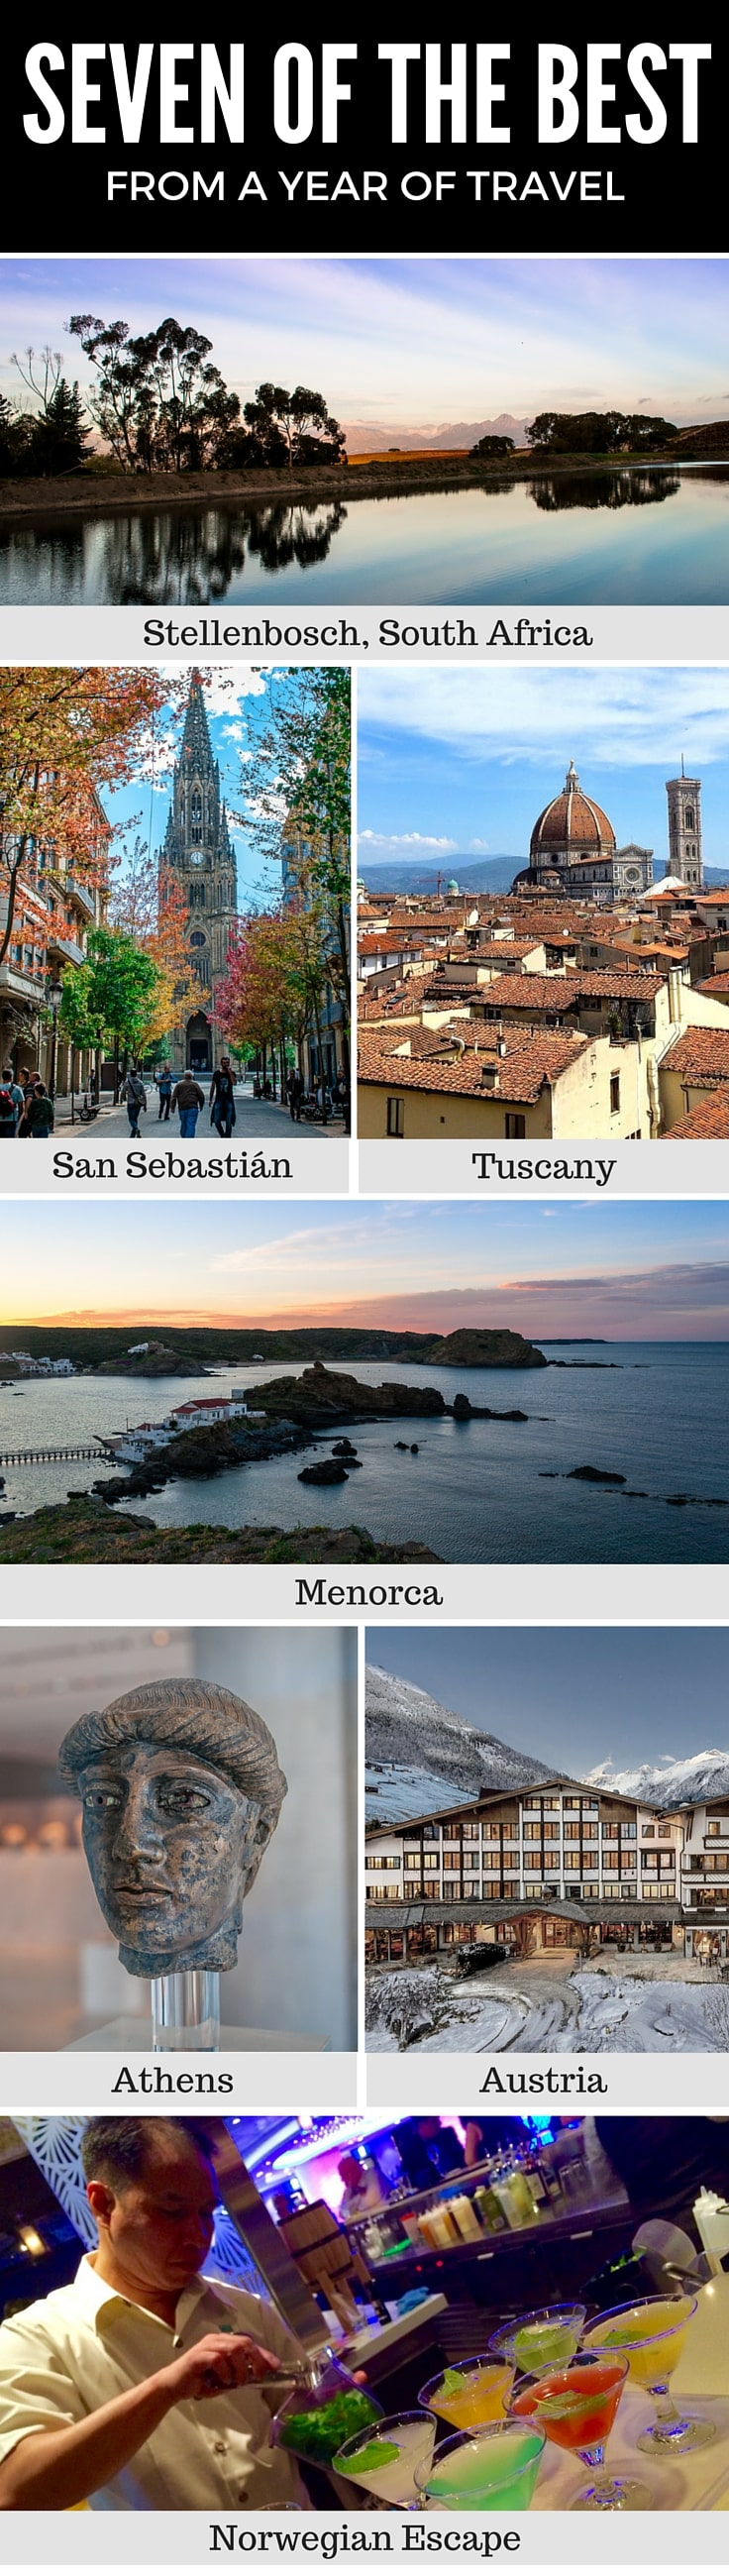 Seven of the best places to travel to